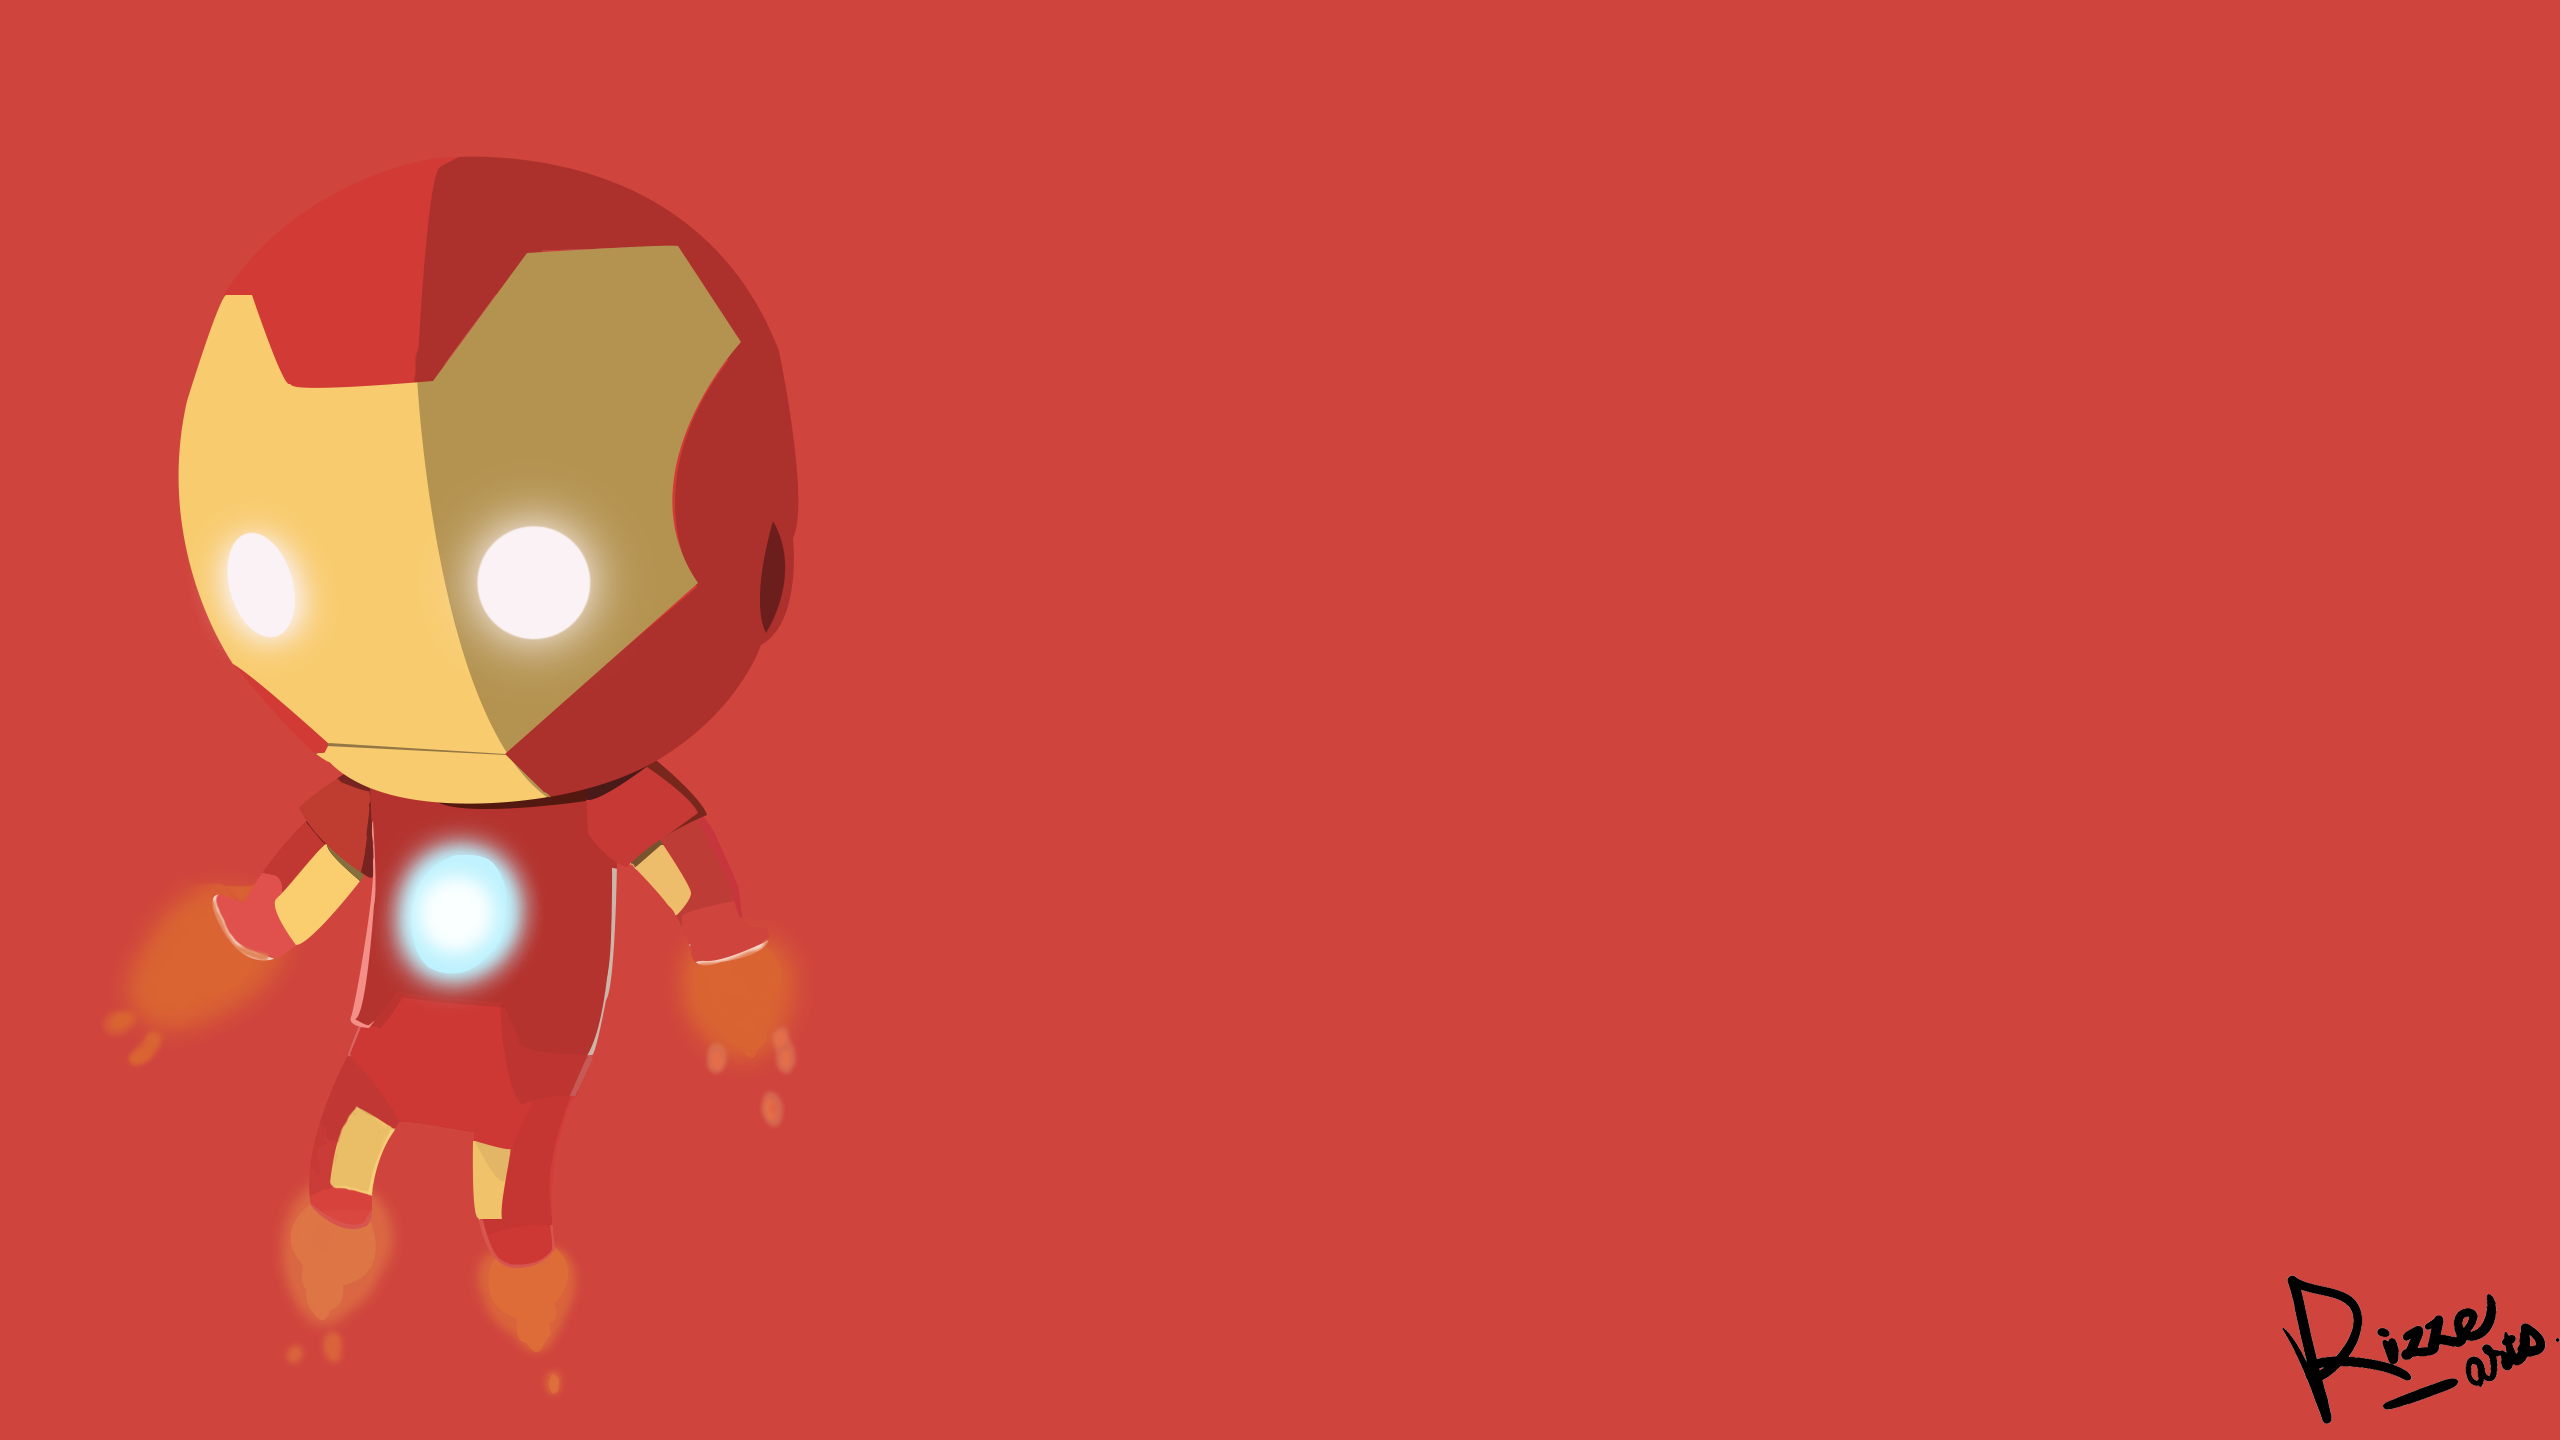 Iron MAn CHibi Design With Logo By RizZeArtZ